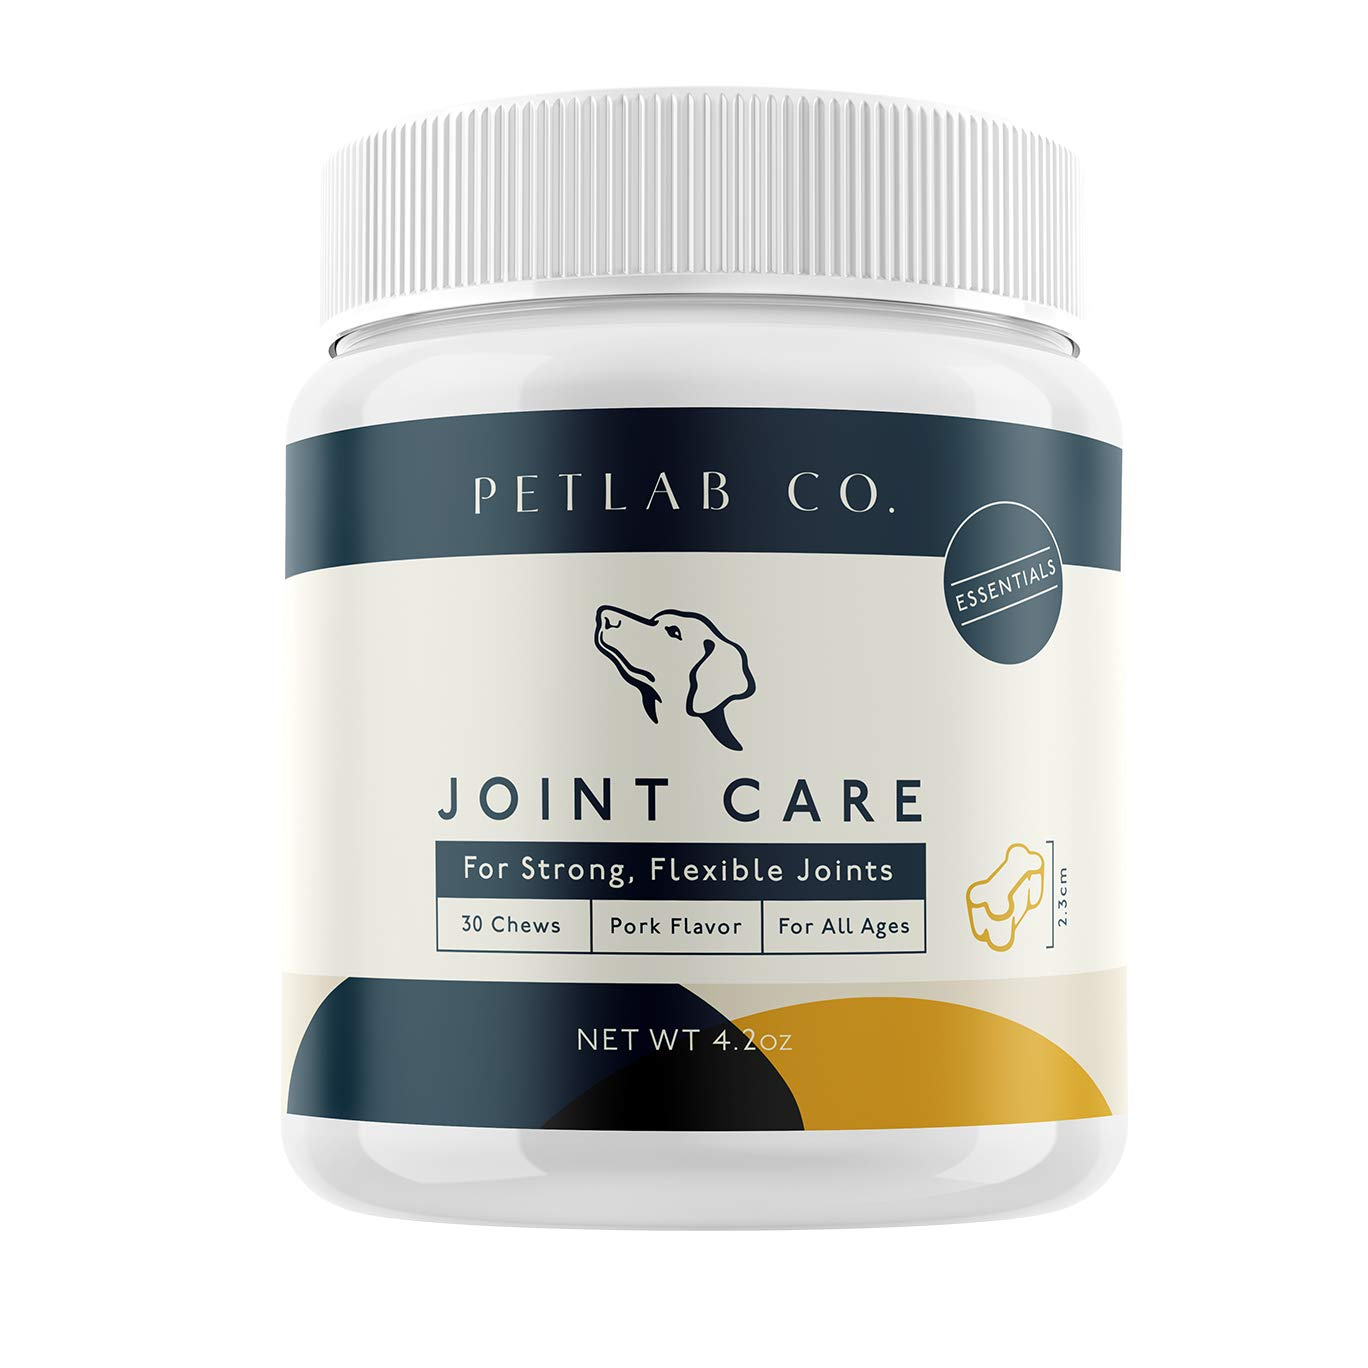 Petlab Co. Joint Health Care Chews for Dogs | Arthritis Soft Chew Dog Hip and Joint Chewable Supplement Vitamins | Glucosamine, Fish Oil Omega-3 Fatty Acids, Calcium Fructoborate, Turmeric by Petlab Co.